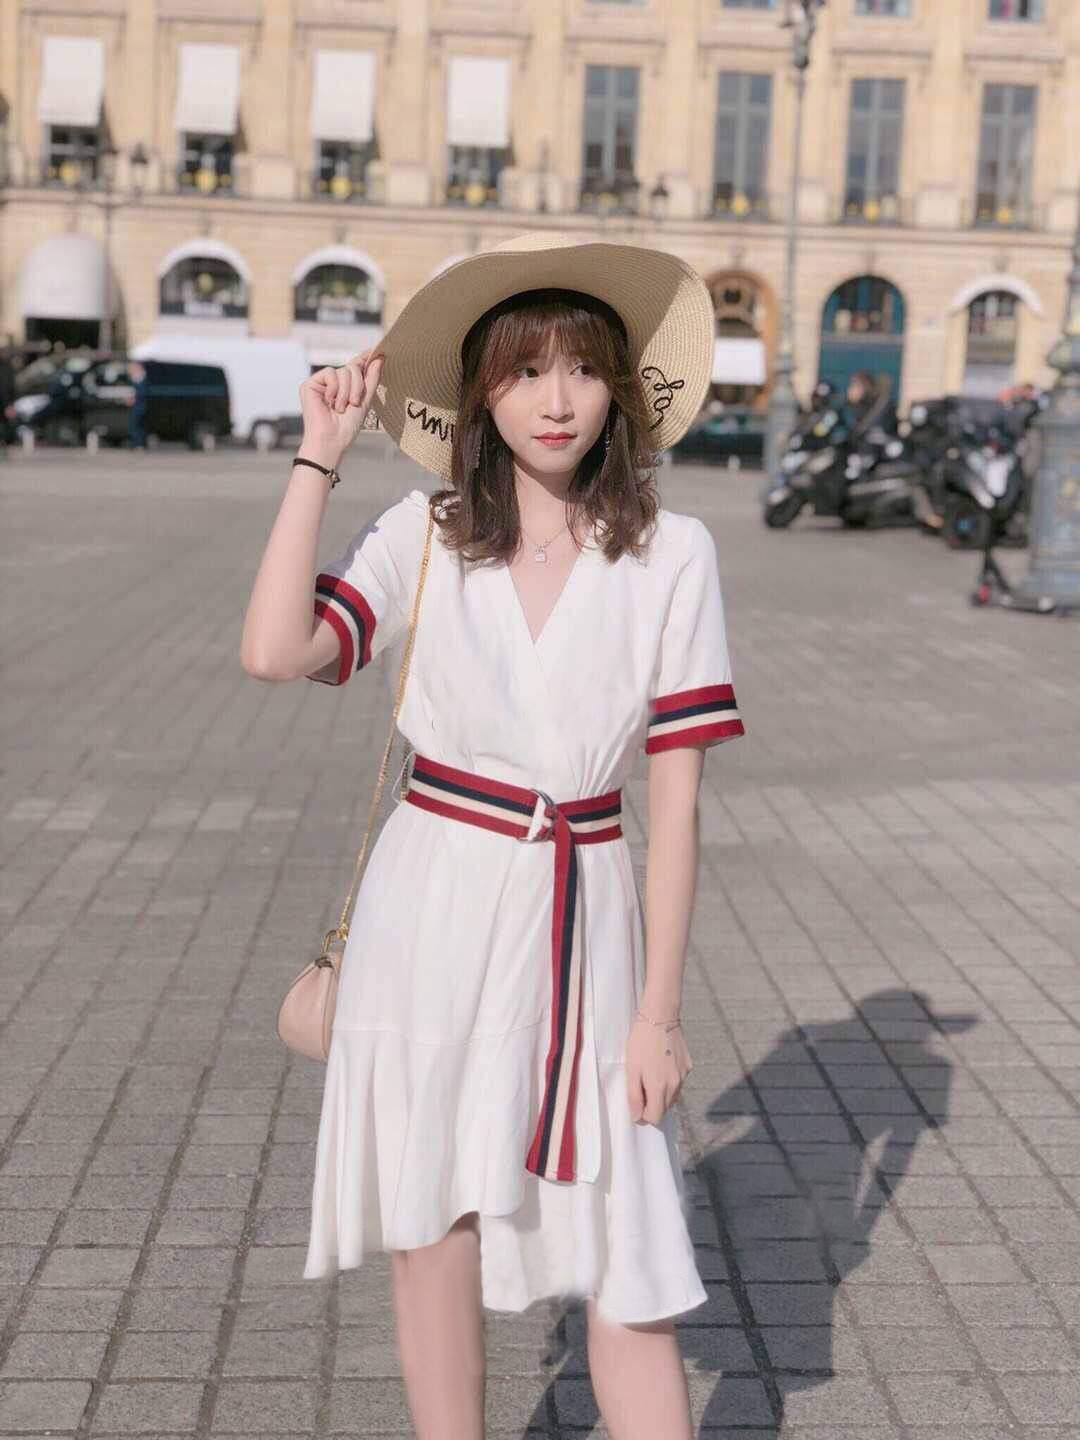 Women Dress 2019 Spring and Summer Stitching Belt Short sleeved V neck Dress